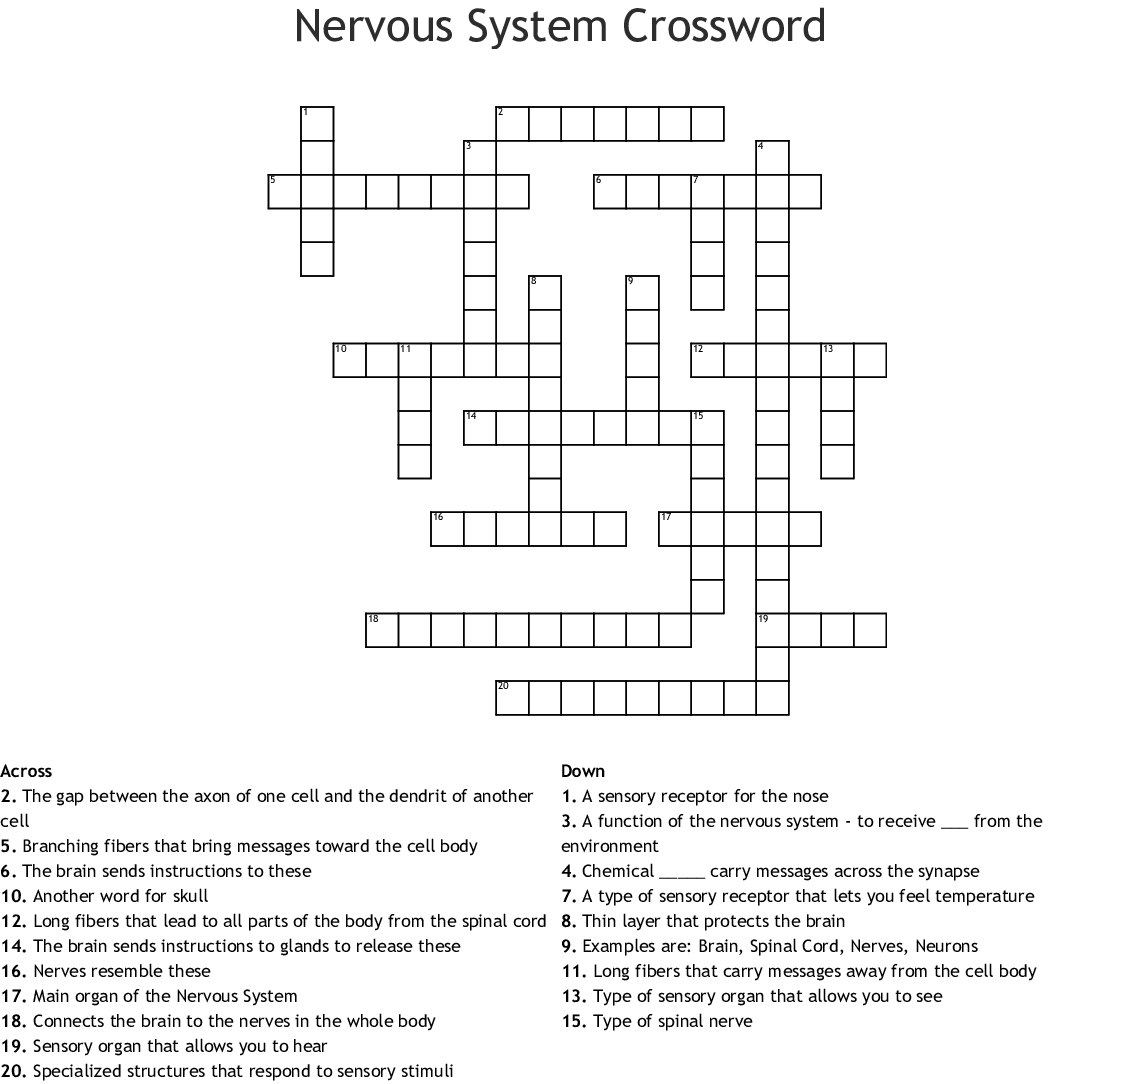 Biology Nervous System Crossword - WordMint